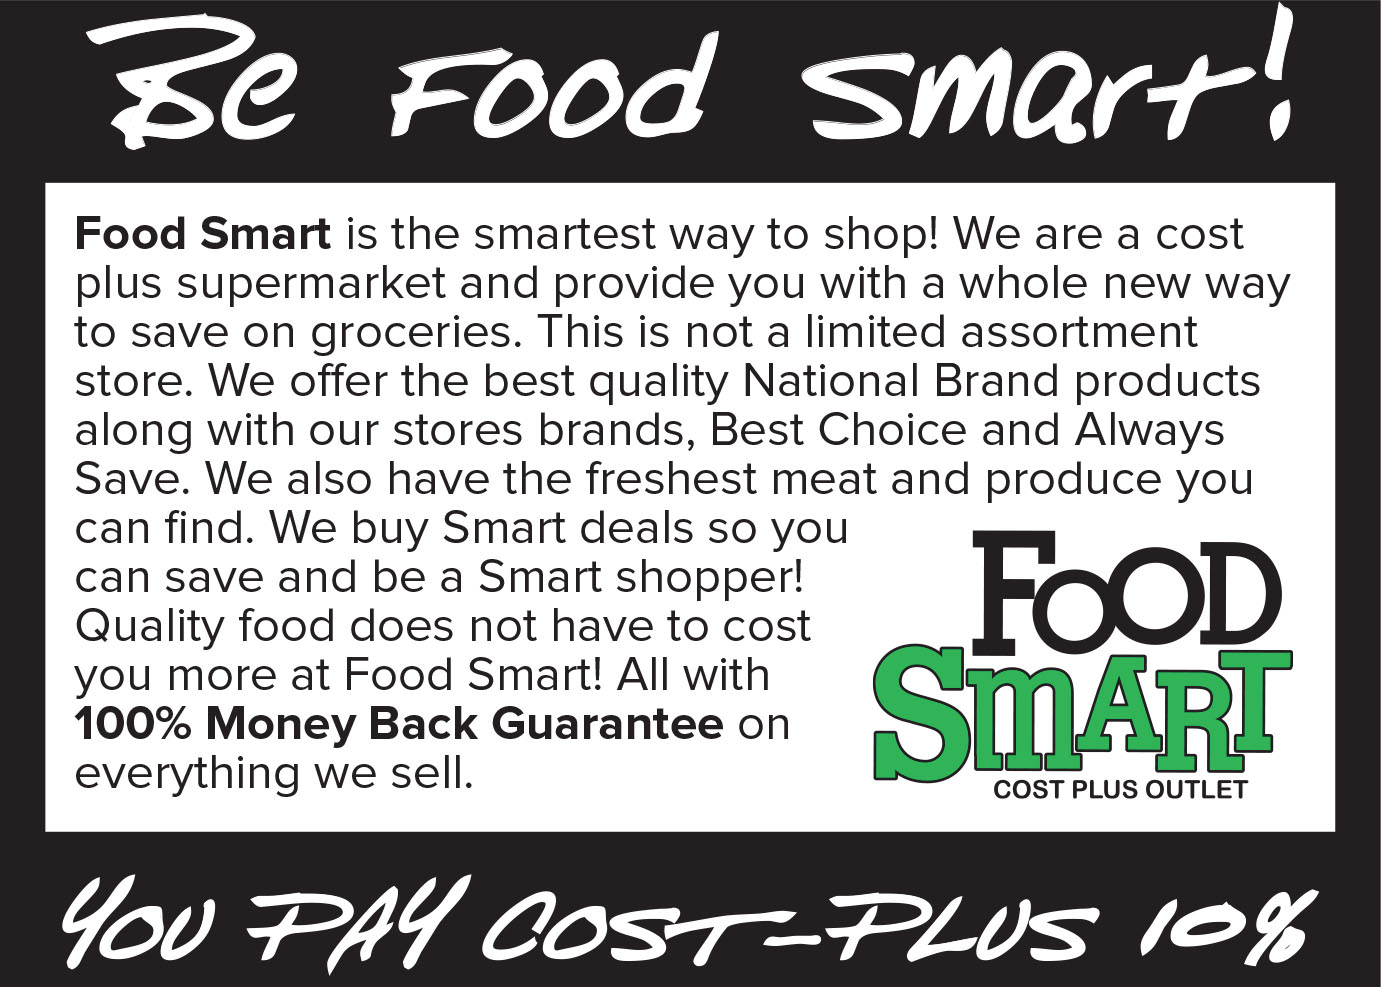 Be Food Smart. You pay cost plus 10%.